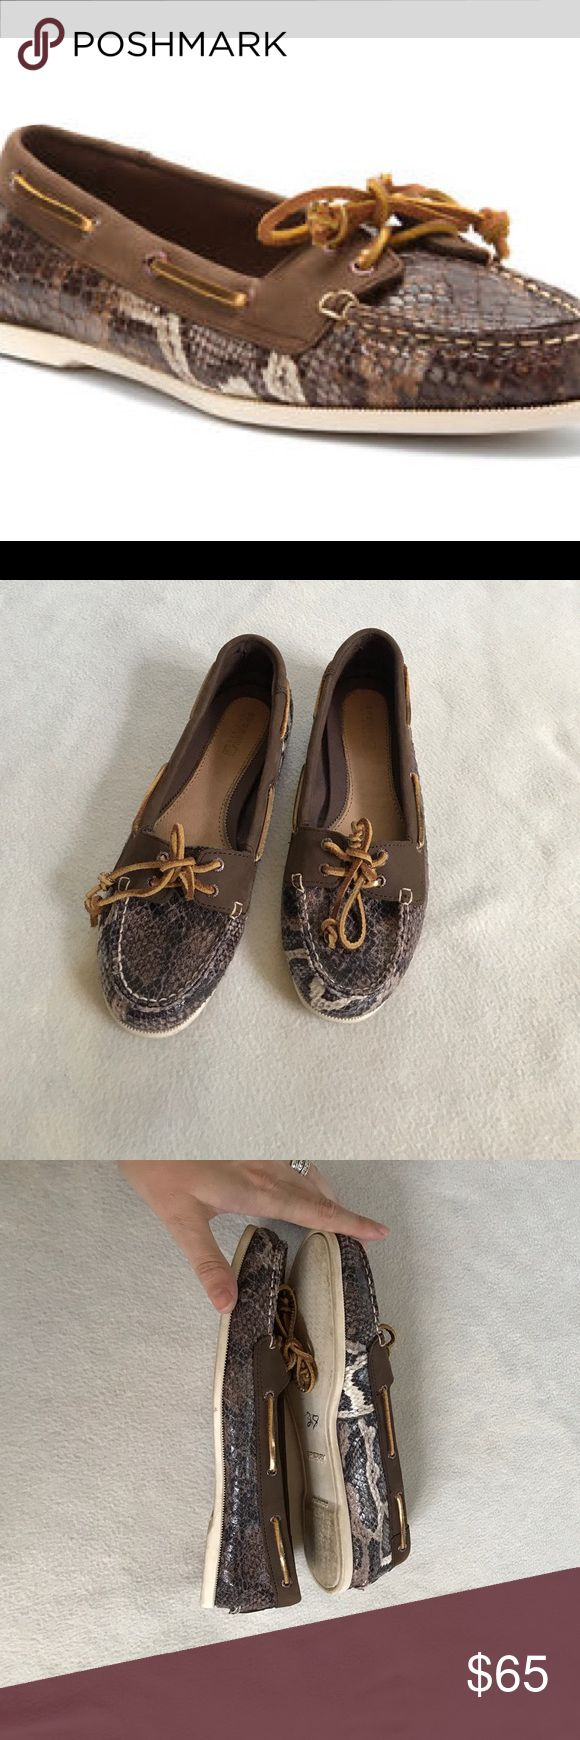 Sperry Audrey Brown Python Pattern Boat Shoe Is a brown pattern with a hint of black. Snakeskin. Has brown accent on top. Ties. Bottom just a tad dirty. Clean inside. Bundle 2+ items for a discount. Sperry Top-Sider Shoes Flats & Loafers